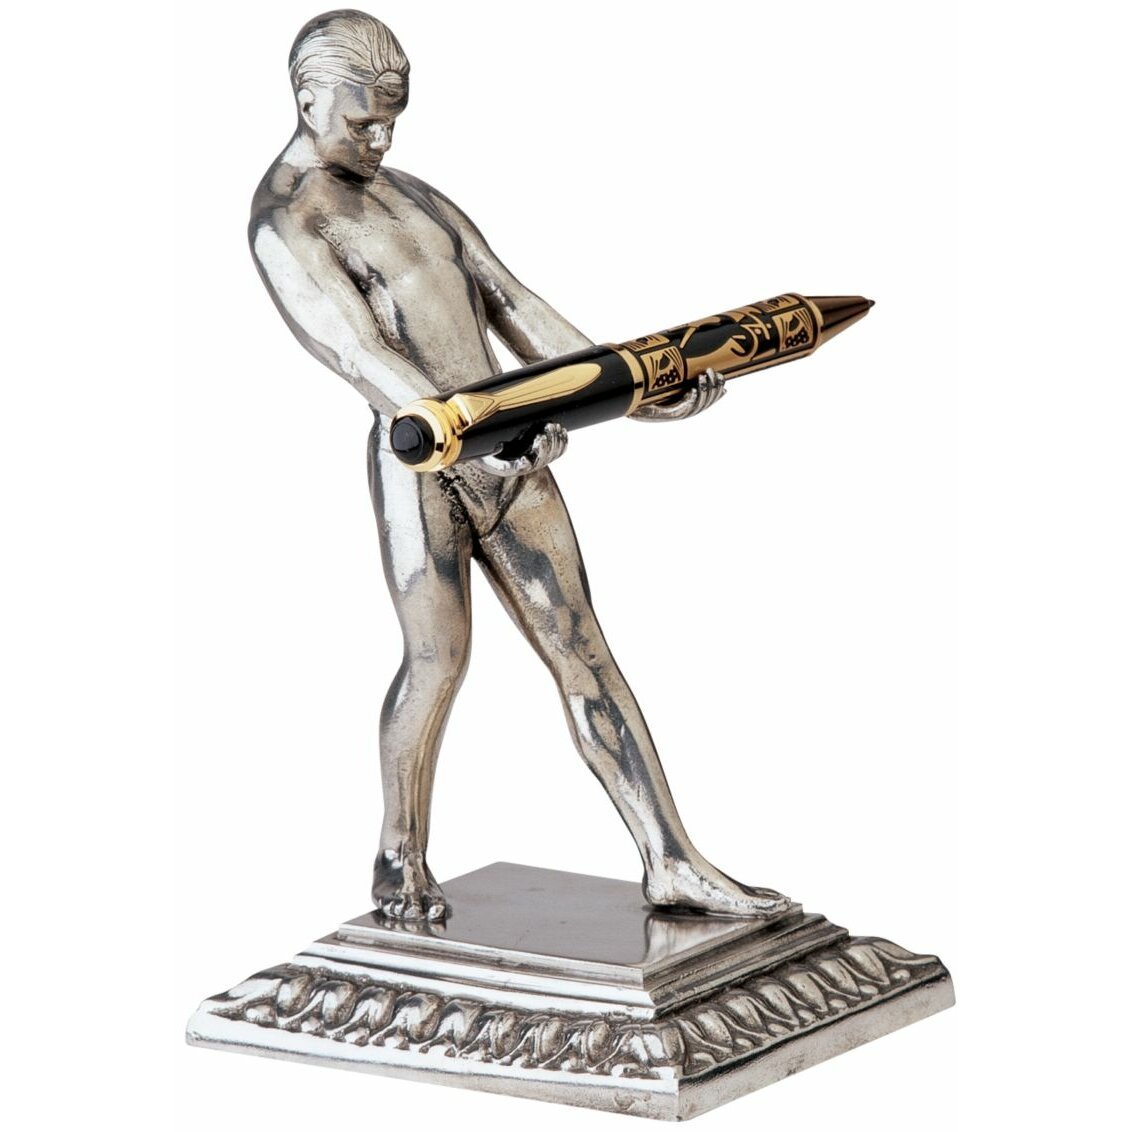 art deco strongman pen holder sculpture wayfair. Black Bedroom Furniture Sets. Home Design Ideas